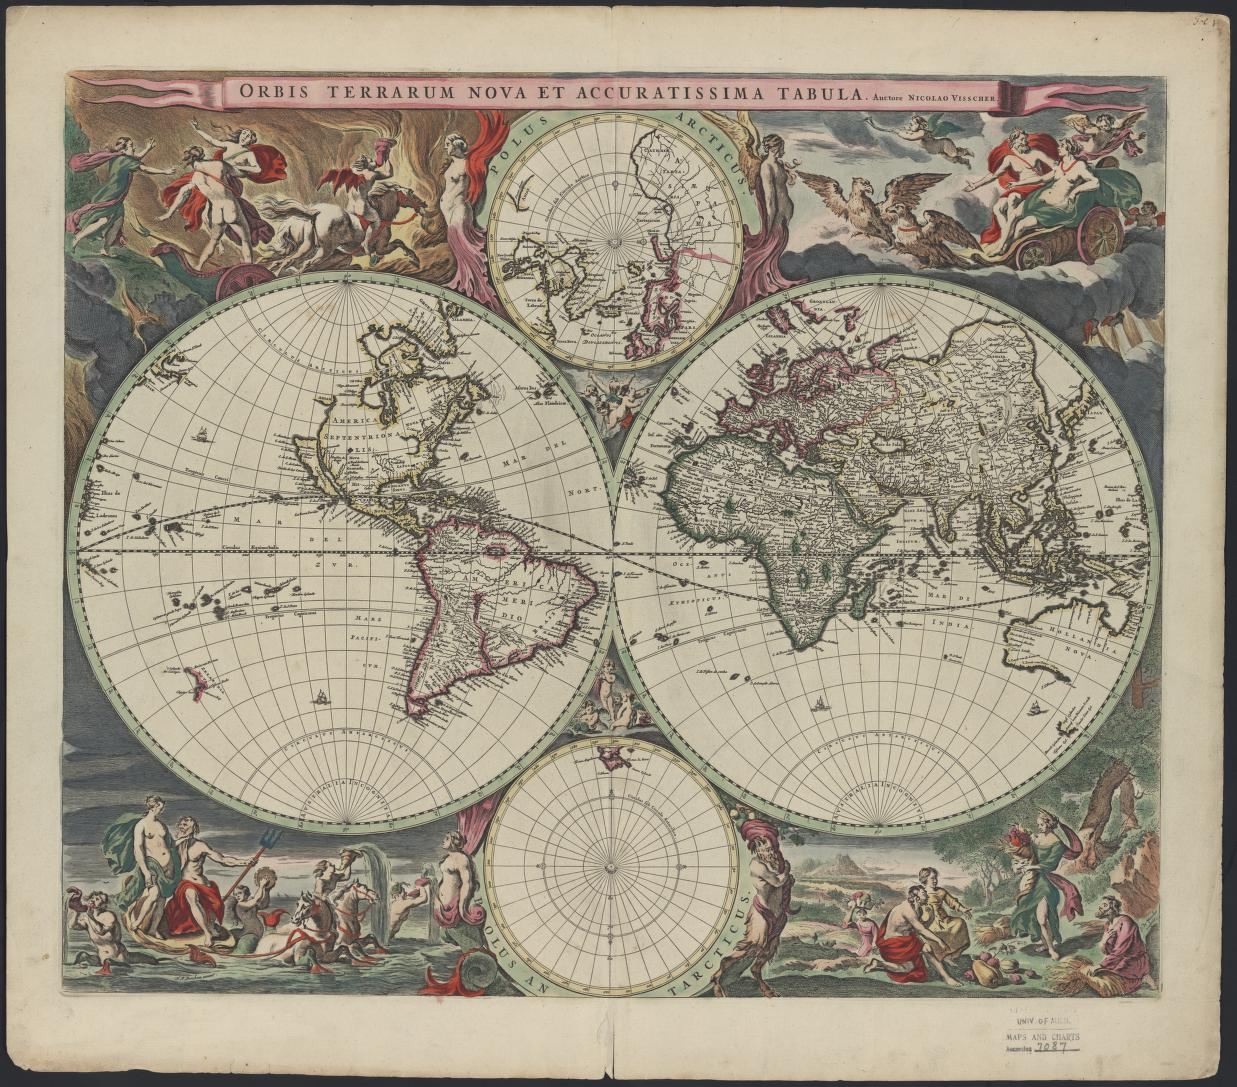 A 17th century map of the world.